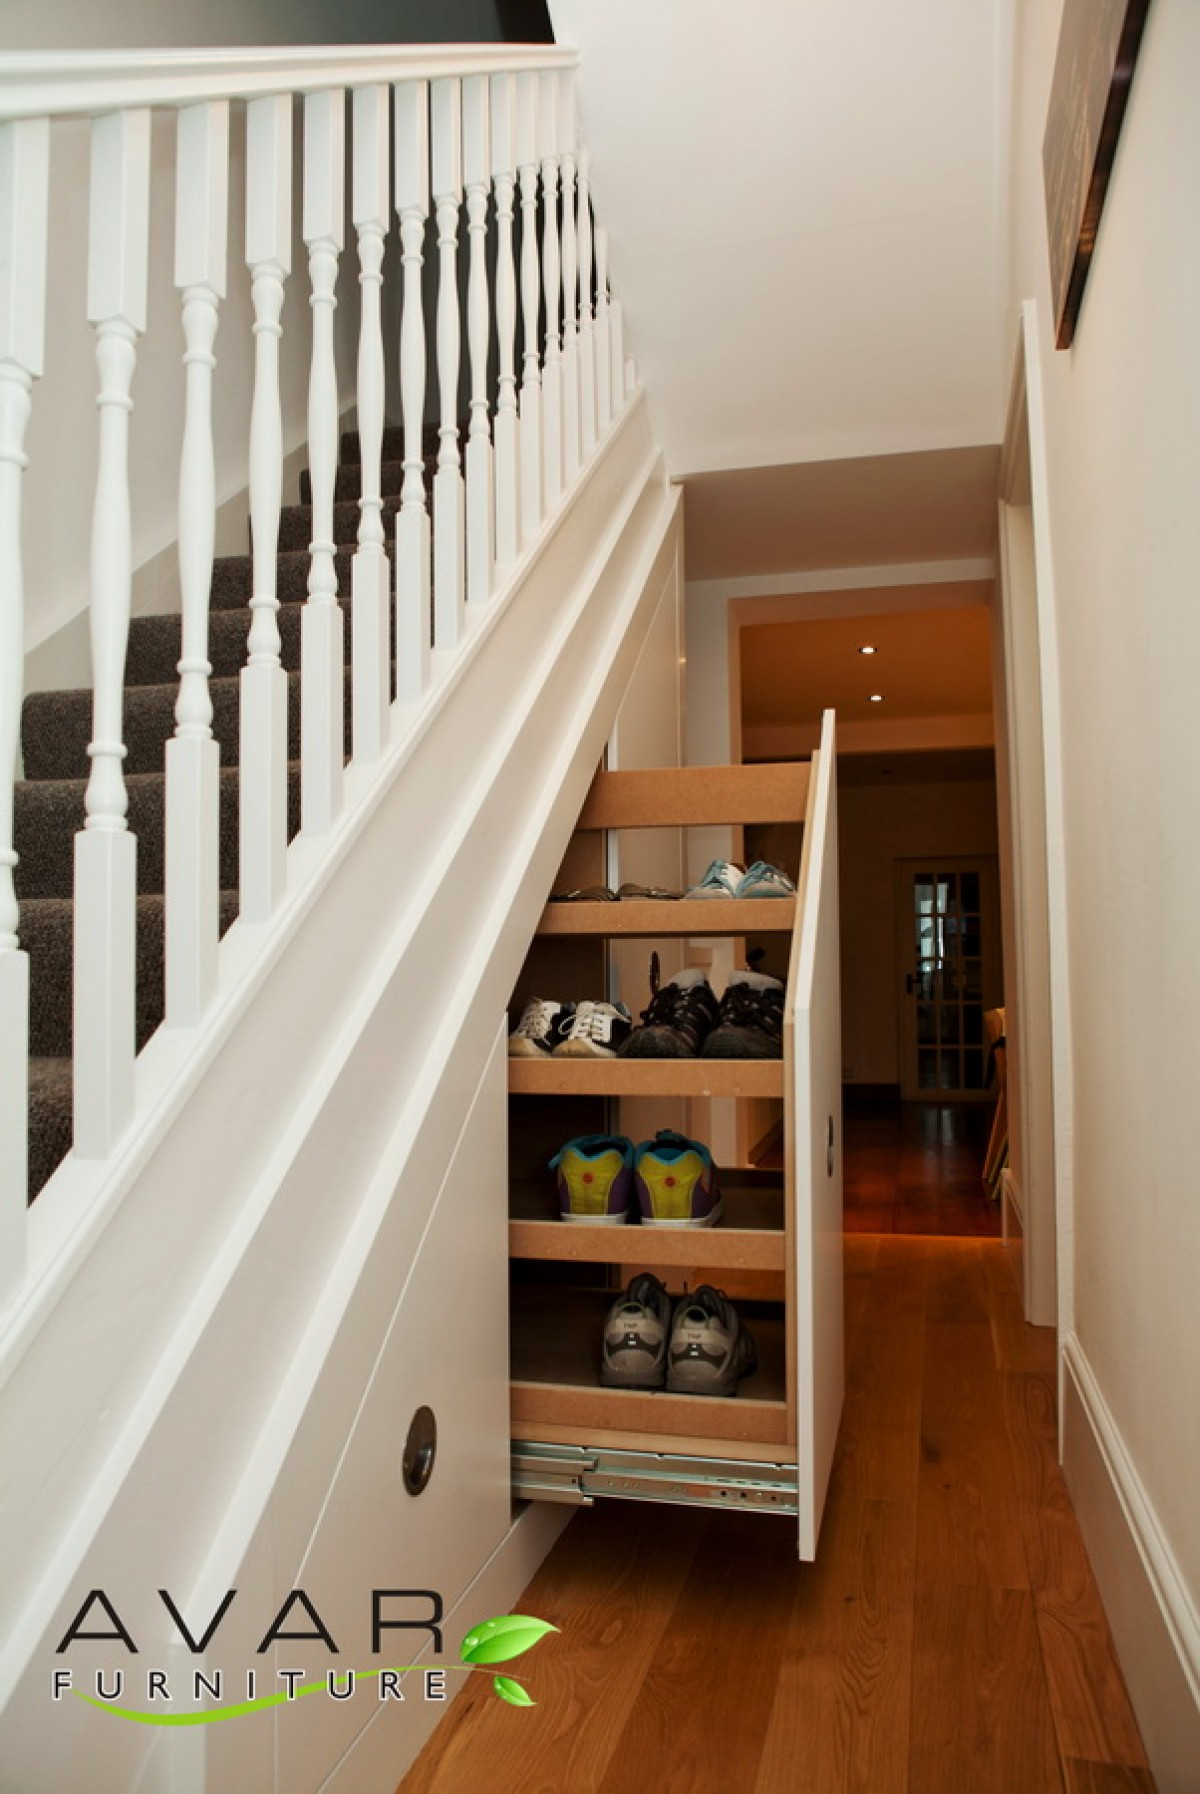 under stairs storage ideas gallery 10 north london uk avar furniture. Black Bedroom Furniture Sets. Home Design Ideas